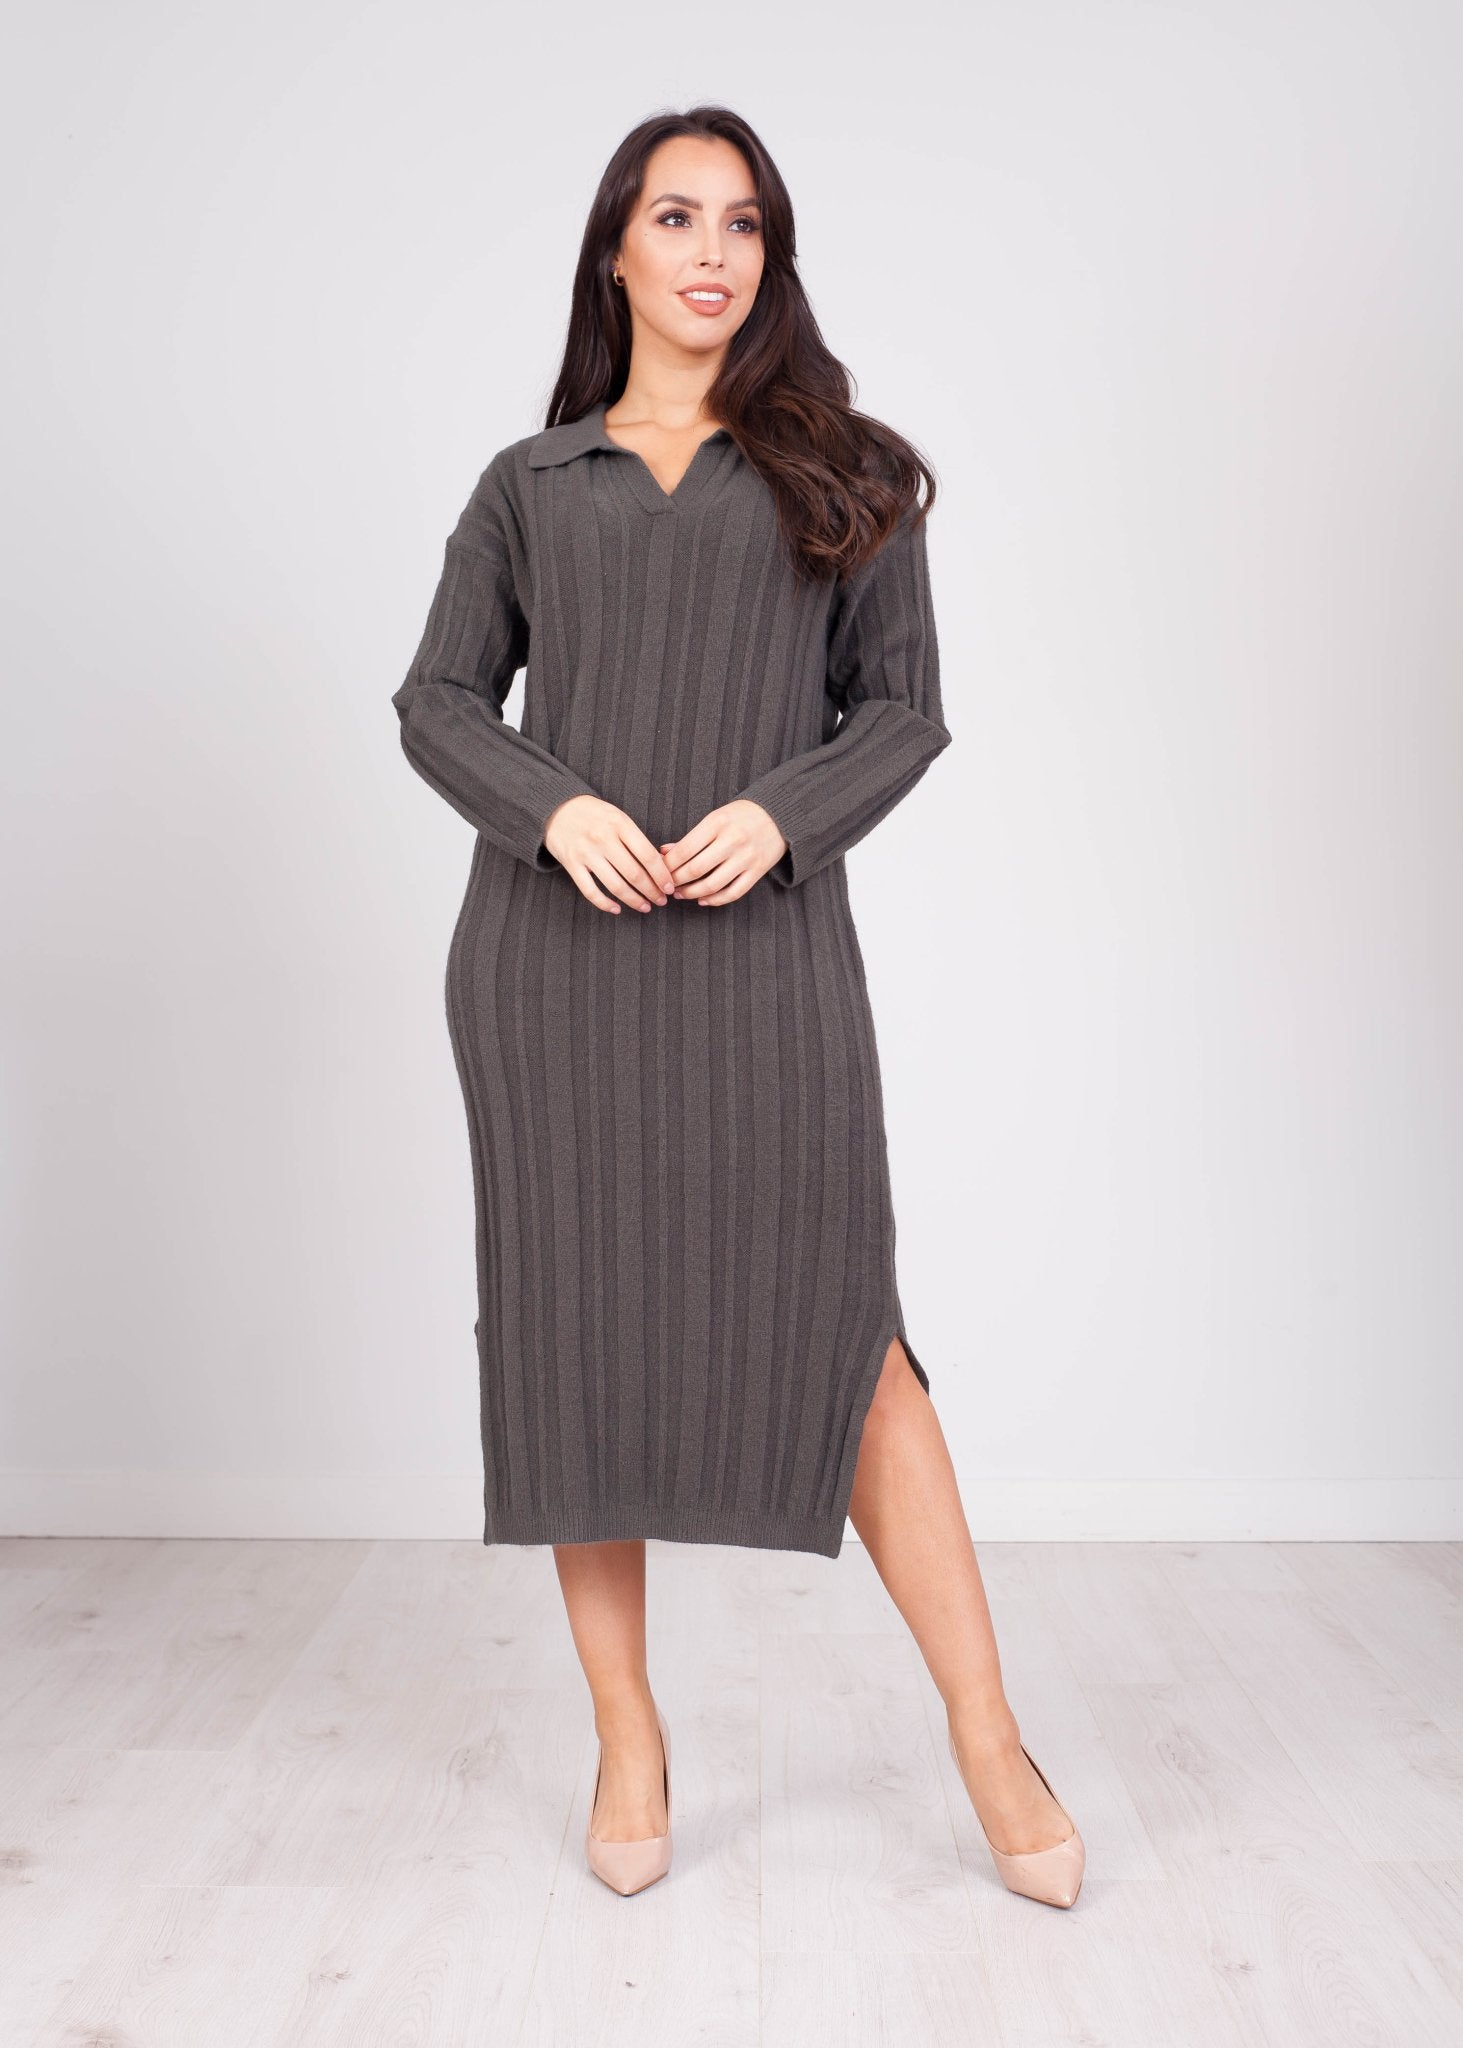 Priya Khaki Longline Knit Shirt Dress - The Walk in Wardrobe